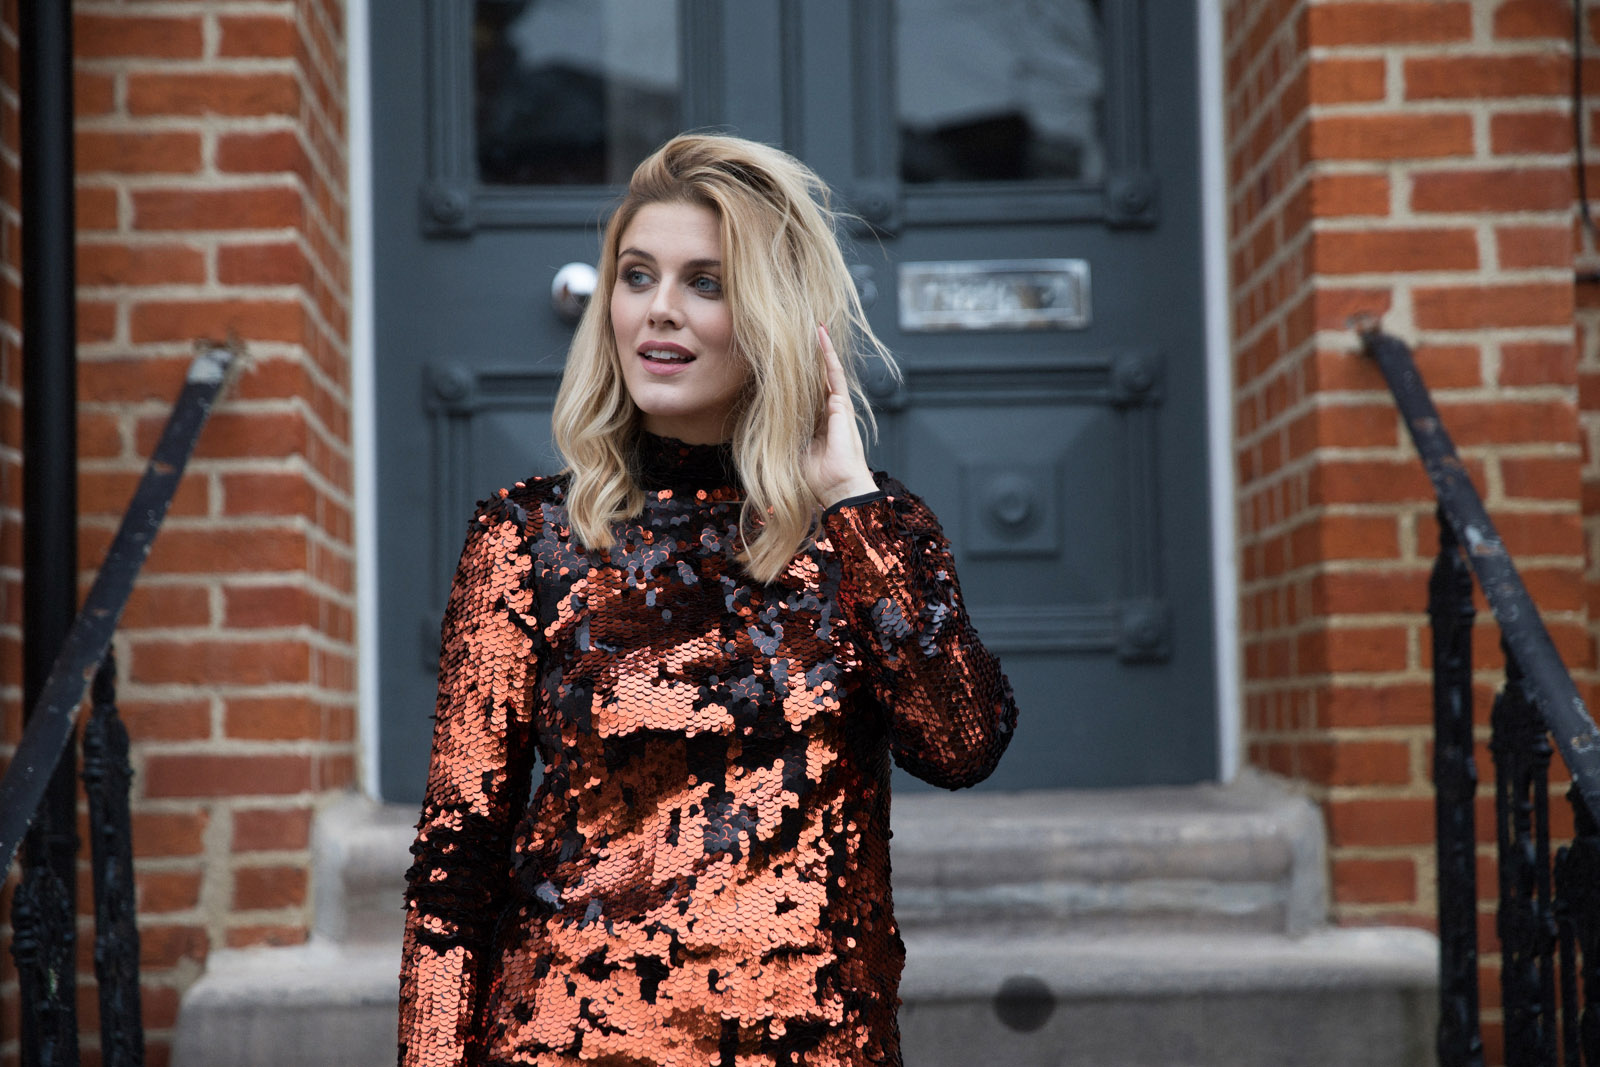 Copper Sequin Dress Ashley James New Years Eve Outfit Ideas